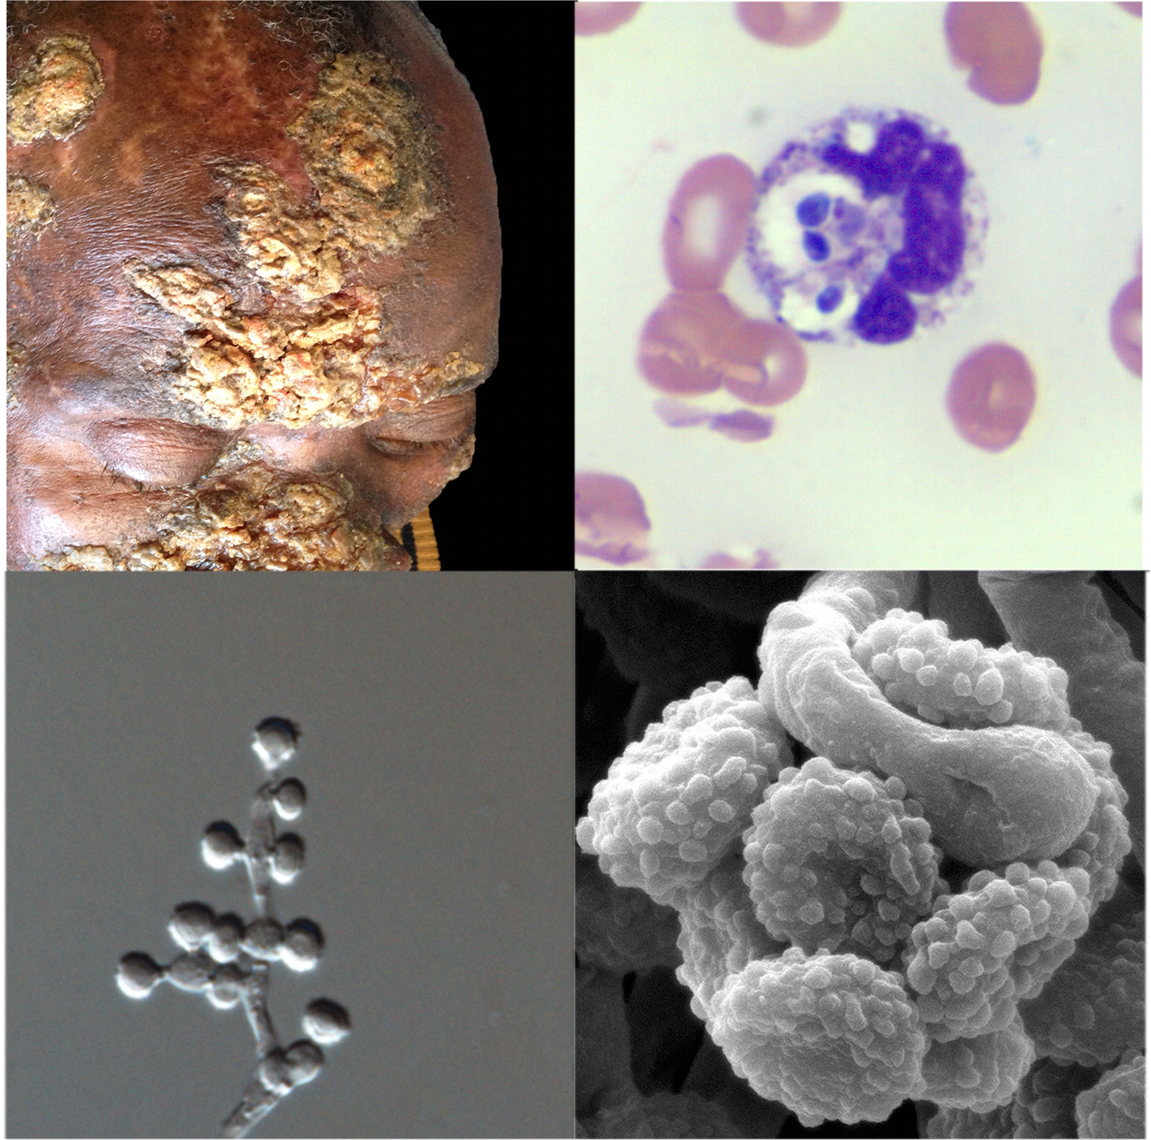 Clinical, pathological, and mycological facets of a novel <i>Emmonsia</i>-like fungus reported from South Africa.